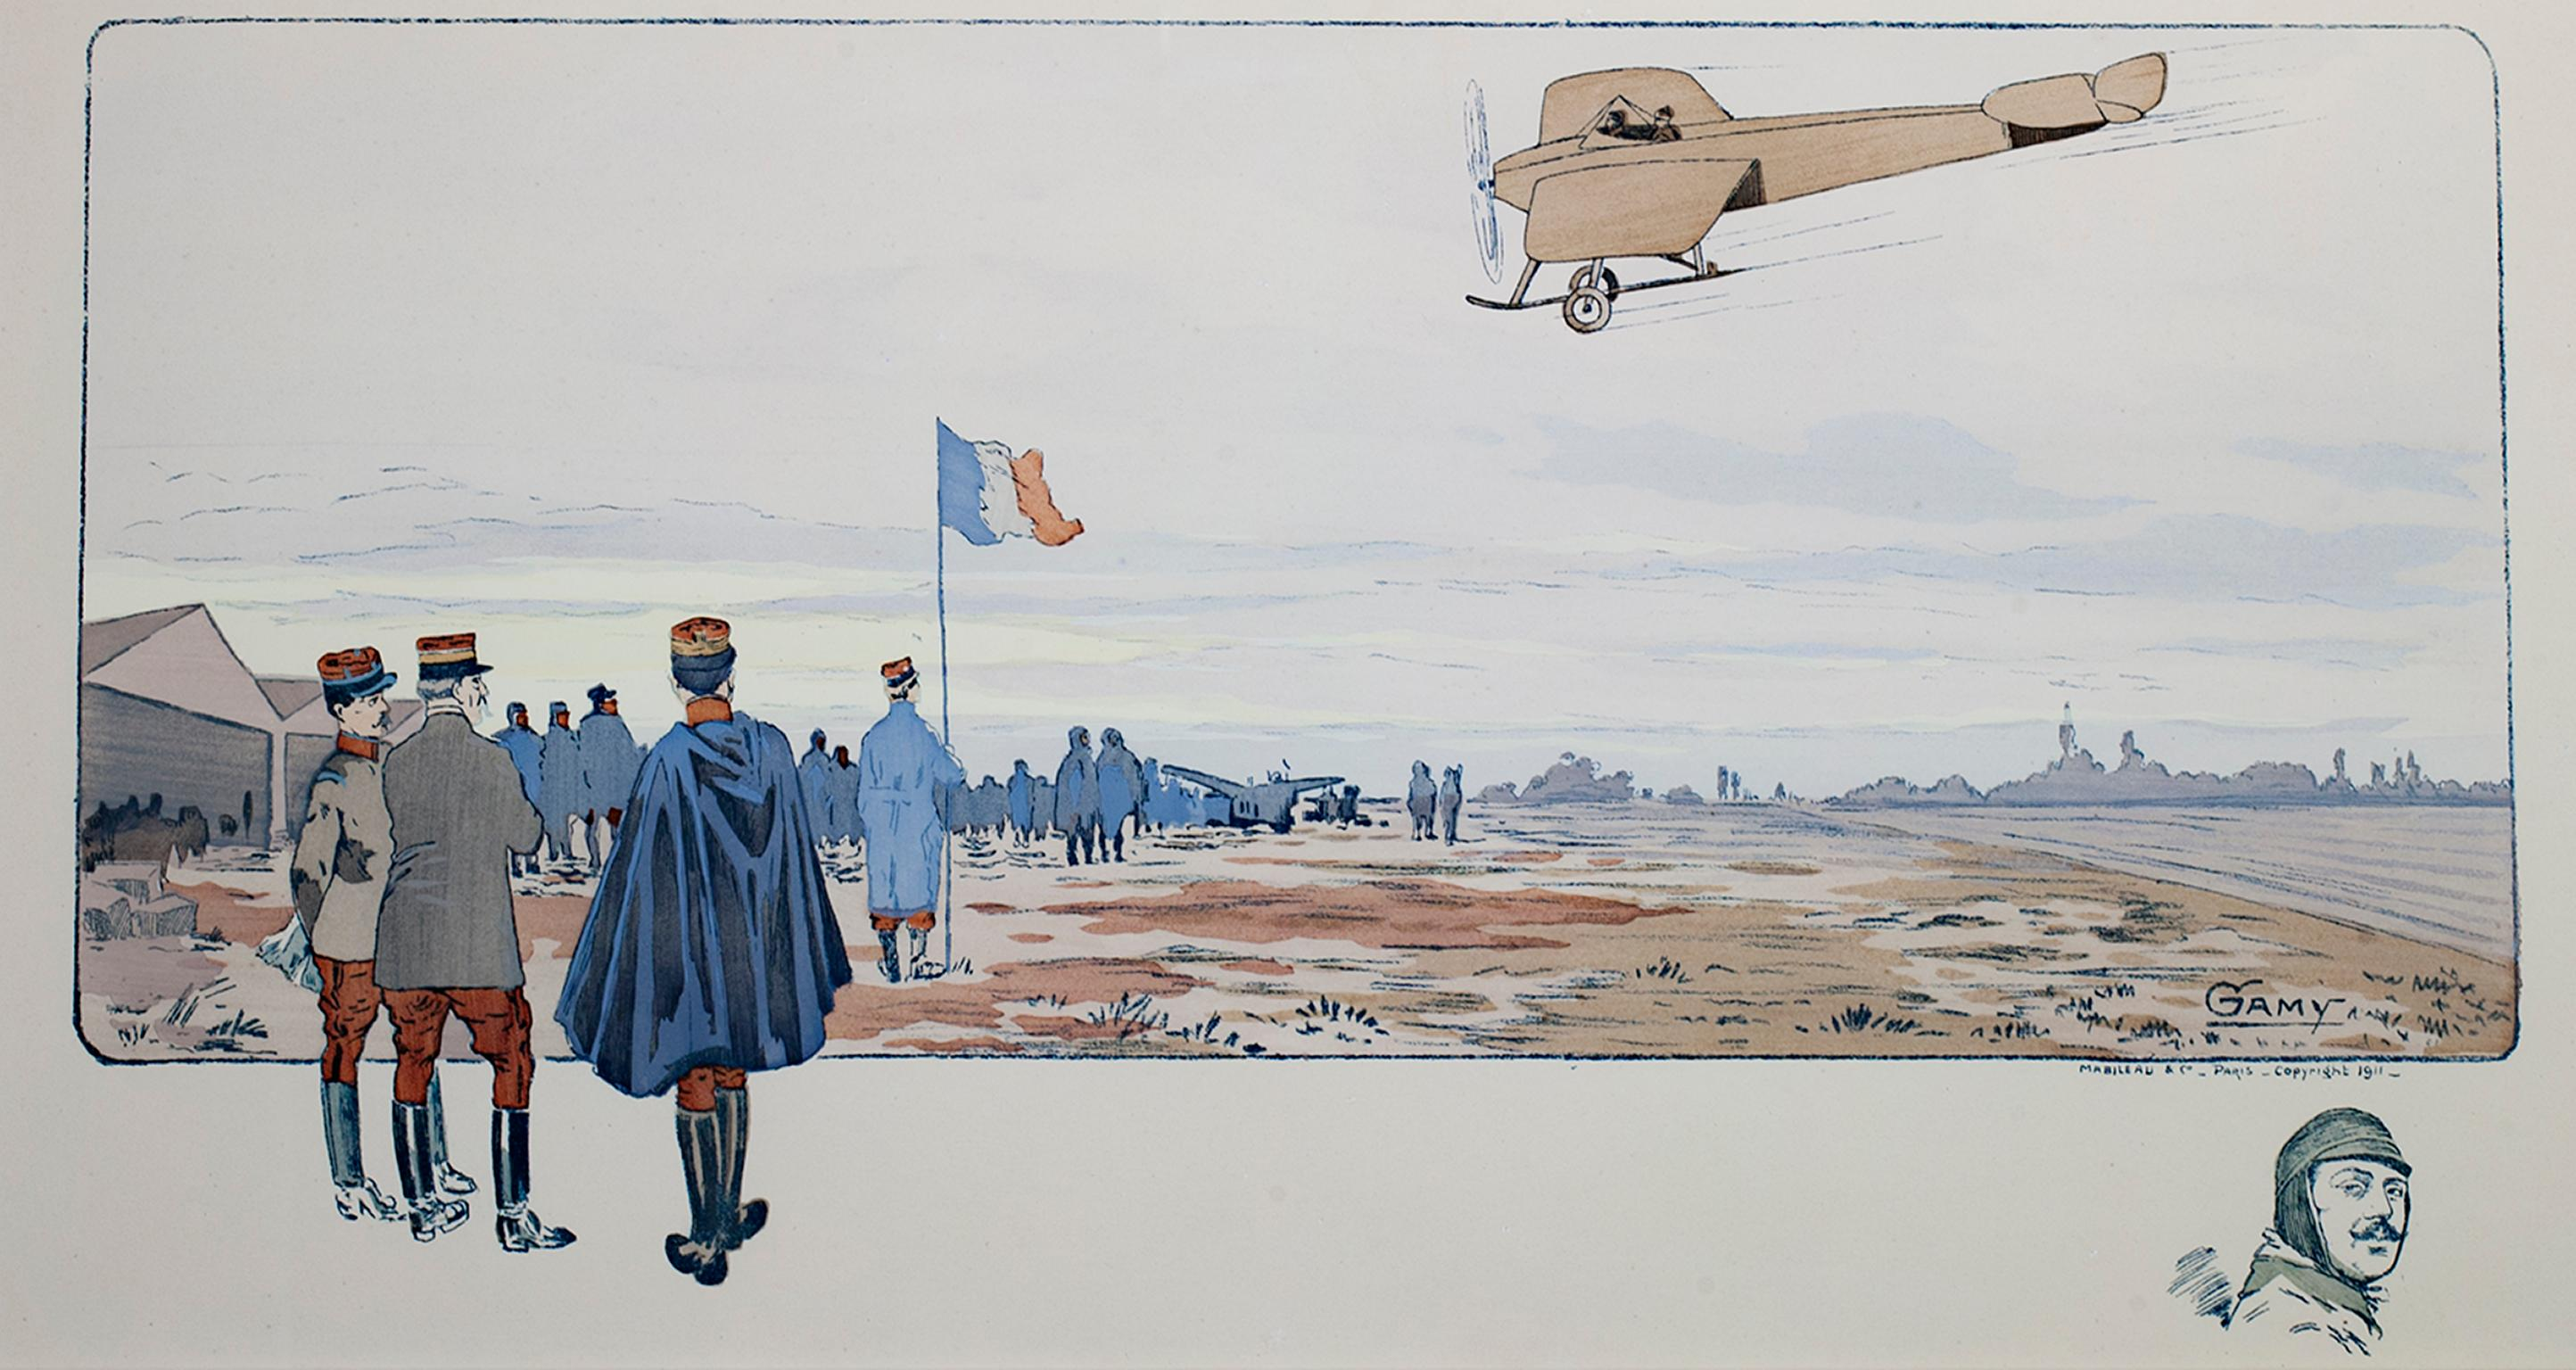 """""""French Air Show with Remarque of Head of Pilot,"""" Lithograph & Stencil by GAMY"""